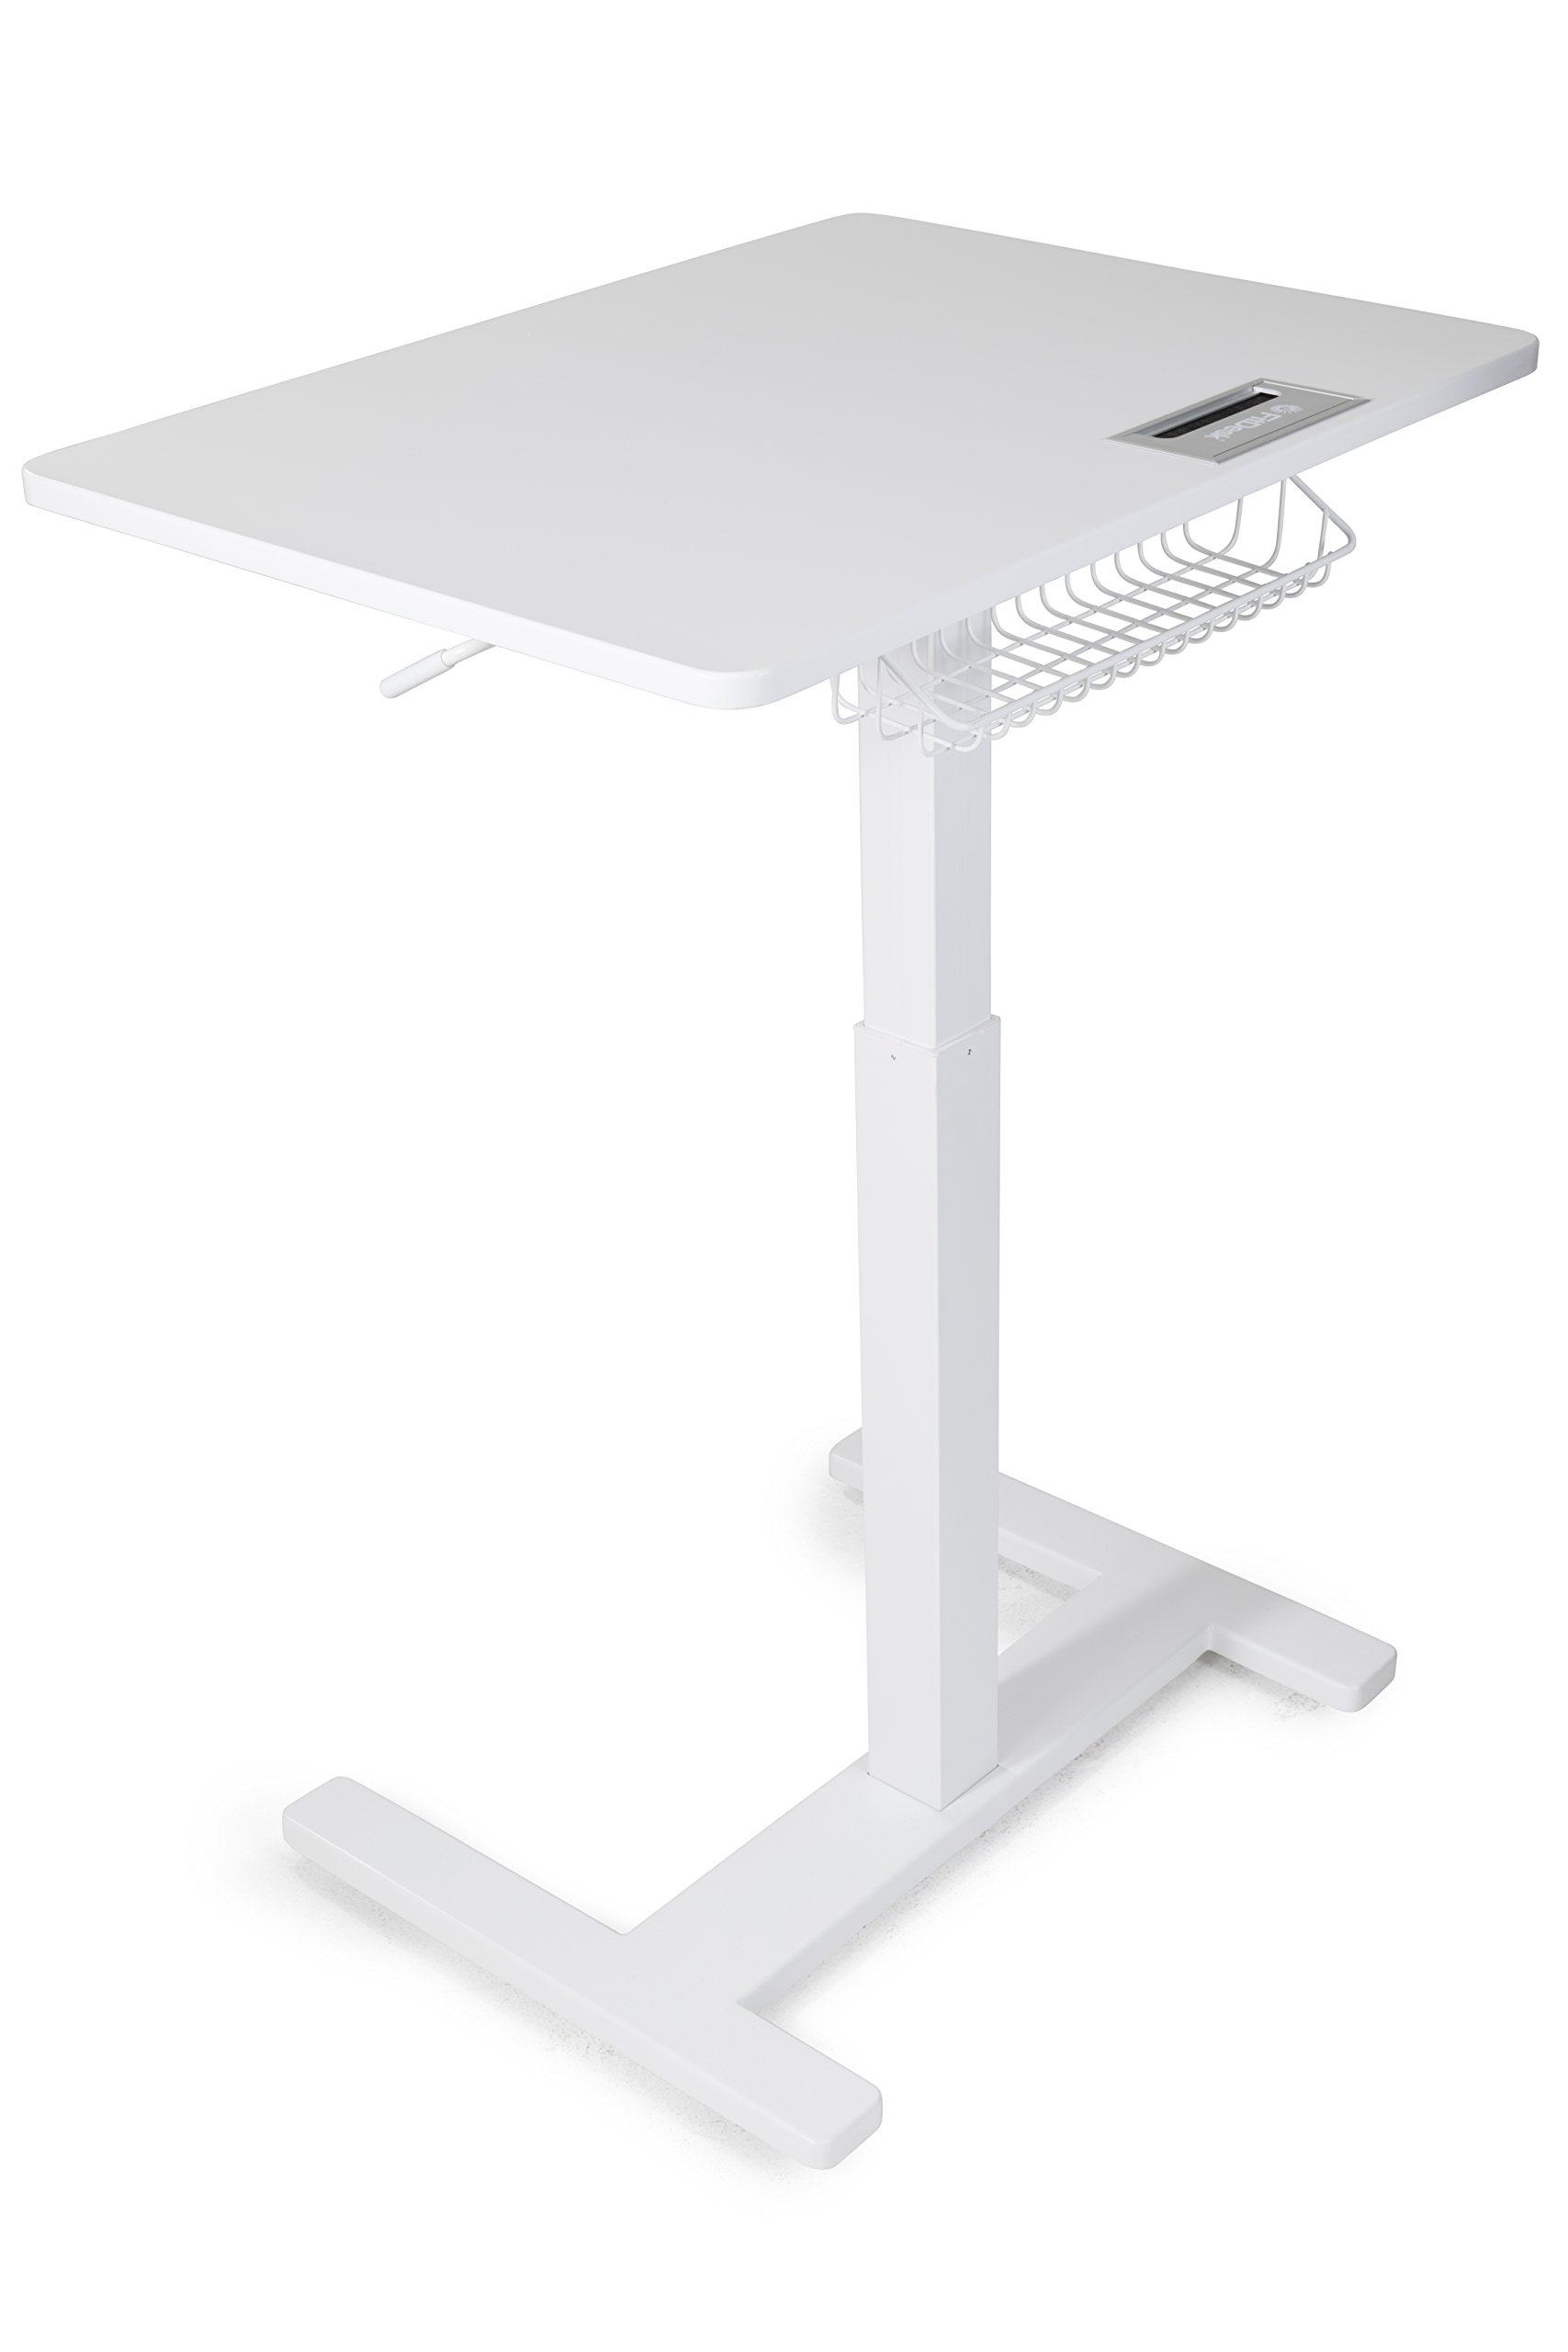 FitDesk Sit-to-Stand Desk, White by FitDesk